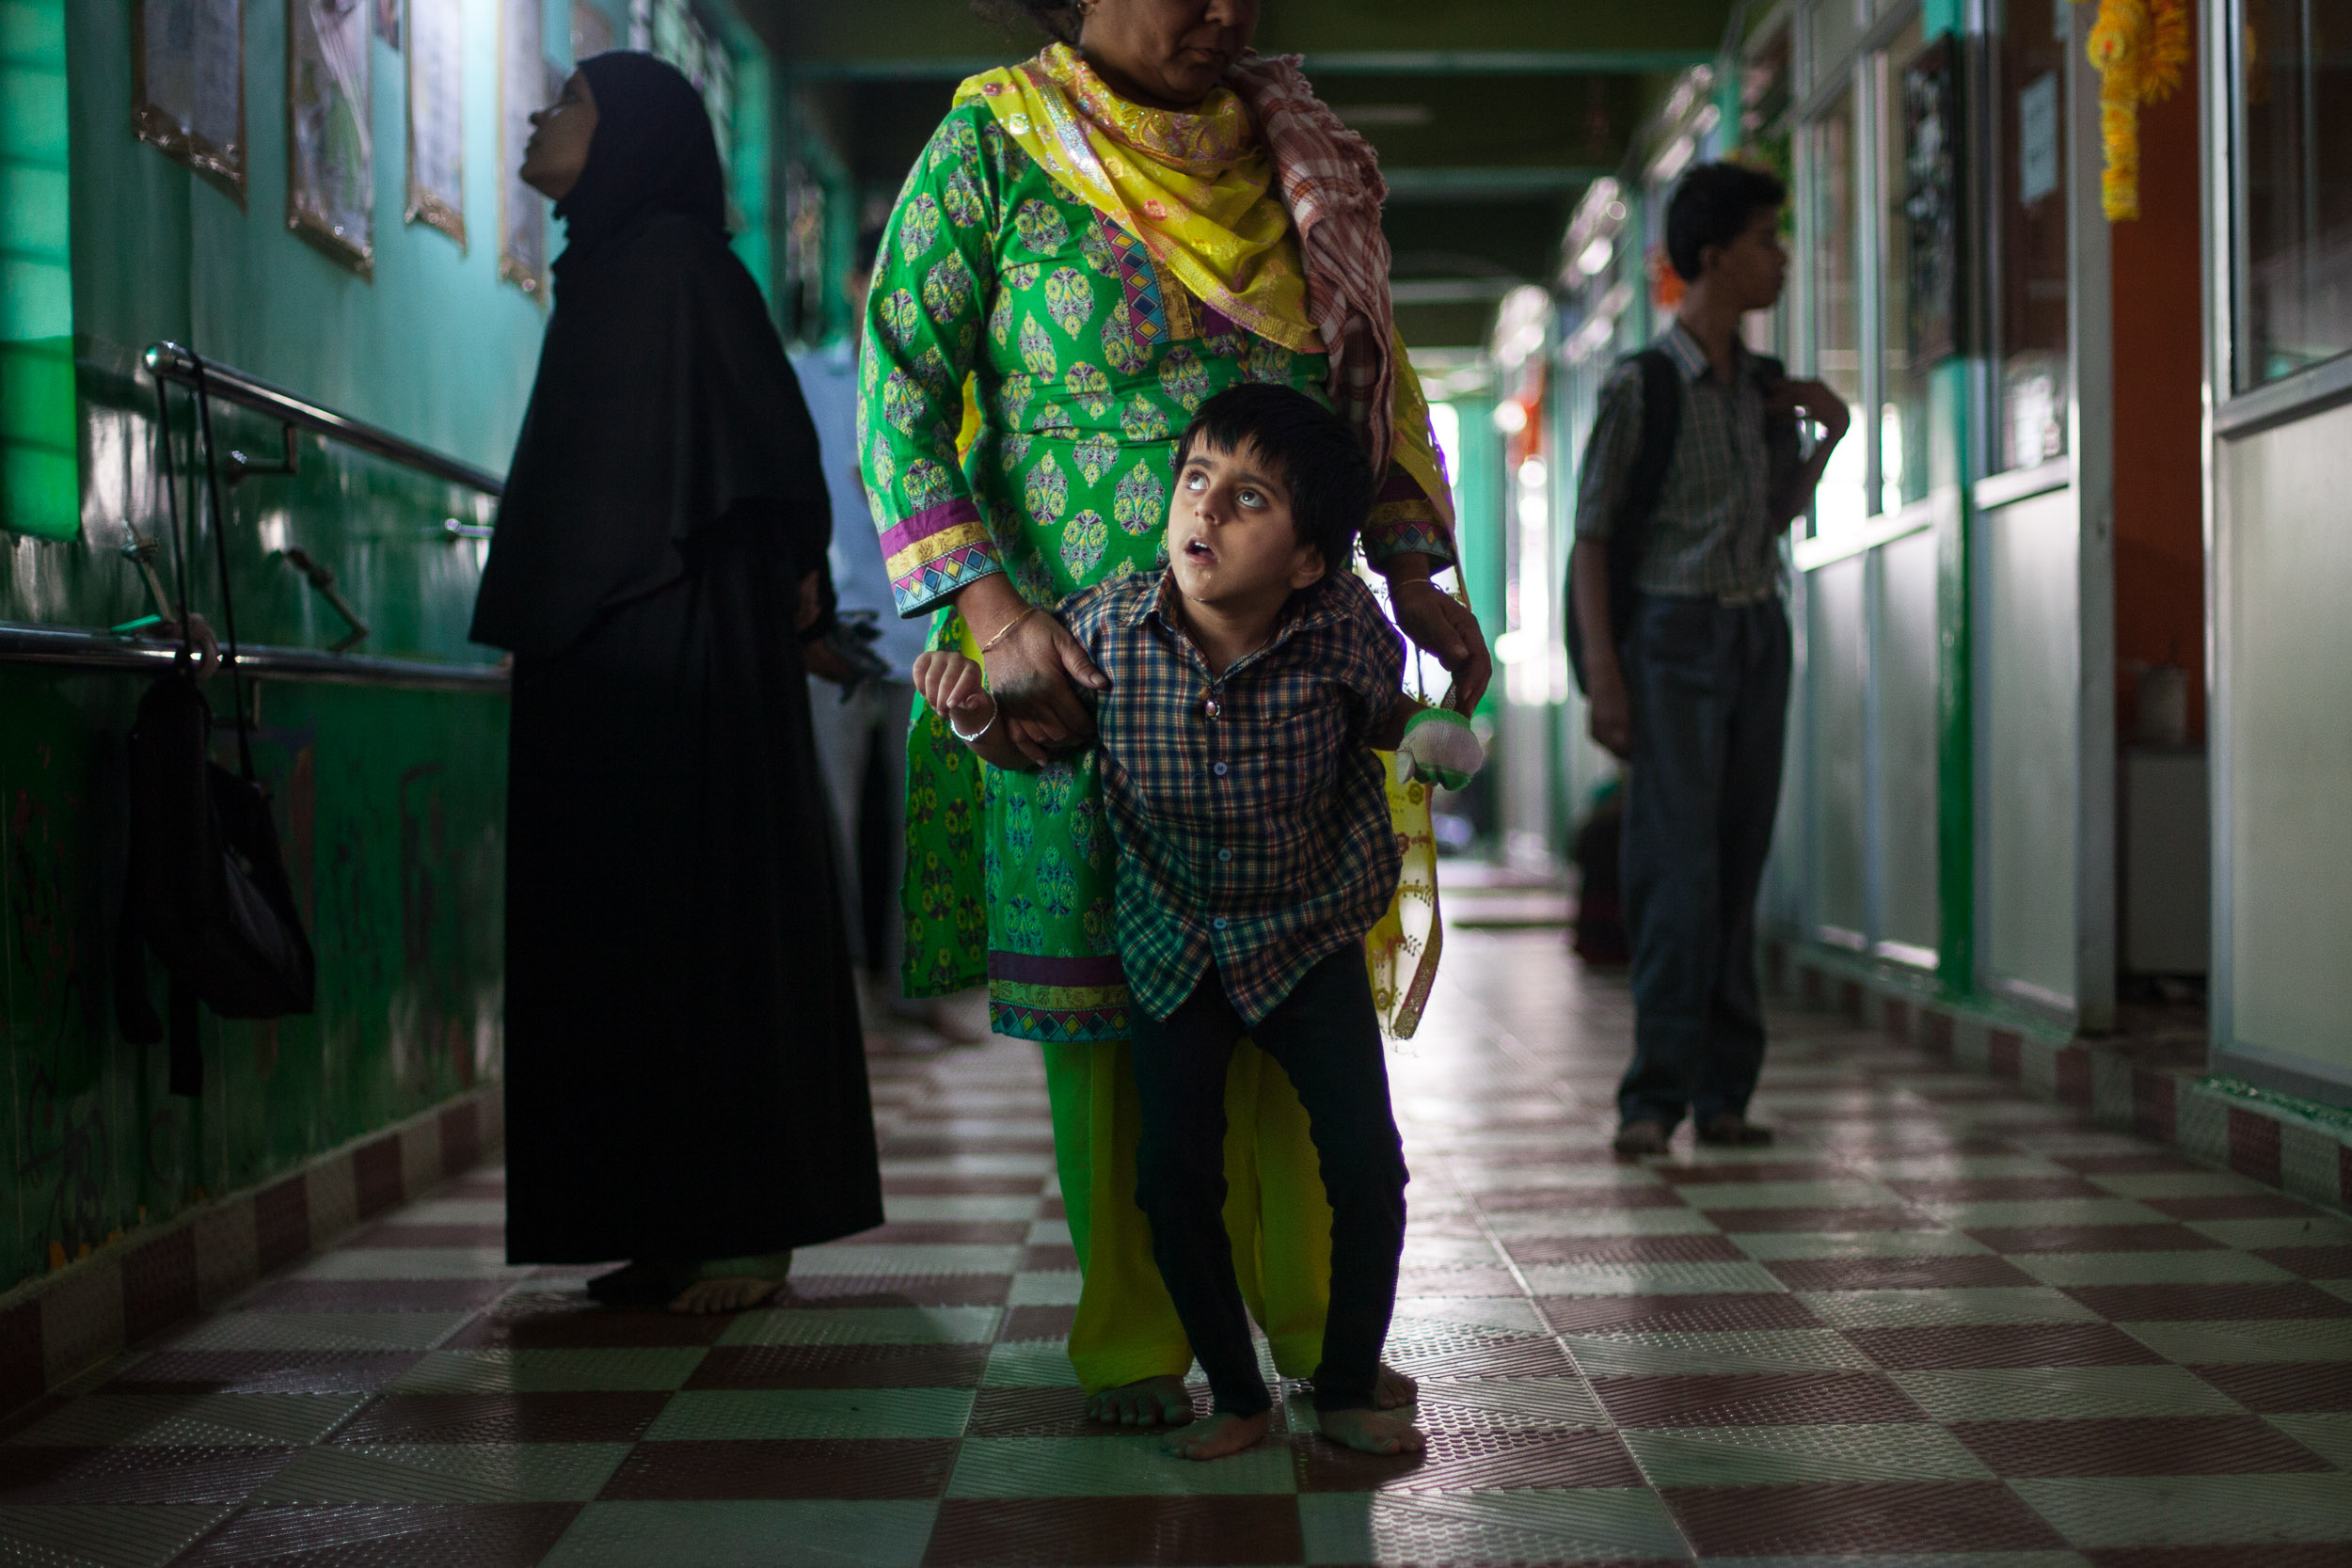 Prachi can only walk with help. She has never learned to talk, and must wear a glove on her left hand to avoid biting herself. She is one of the many children who continue to be born with mental and physical disabilities in Bhopal.